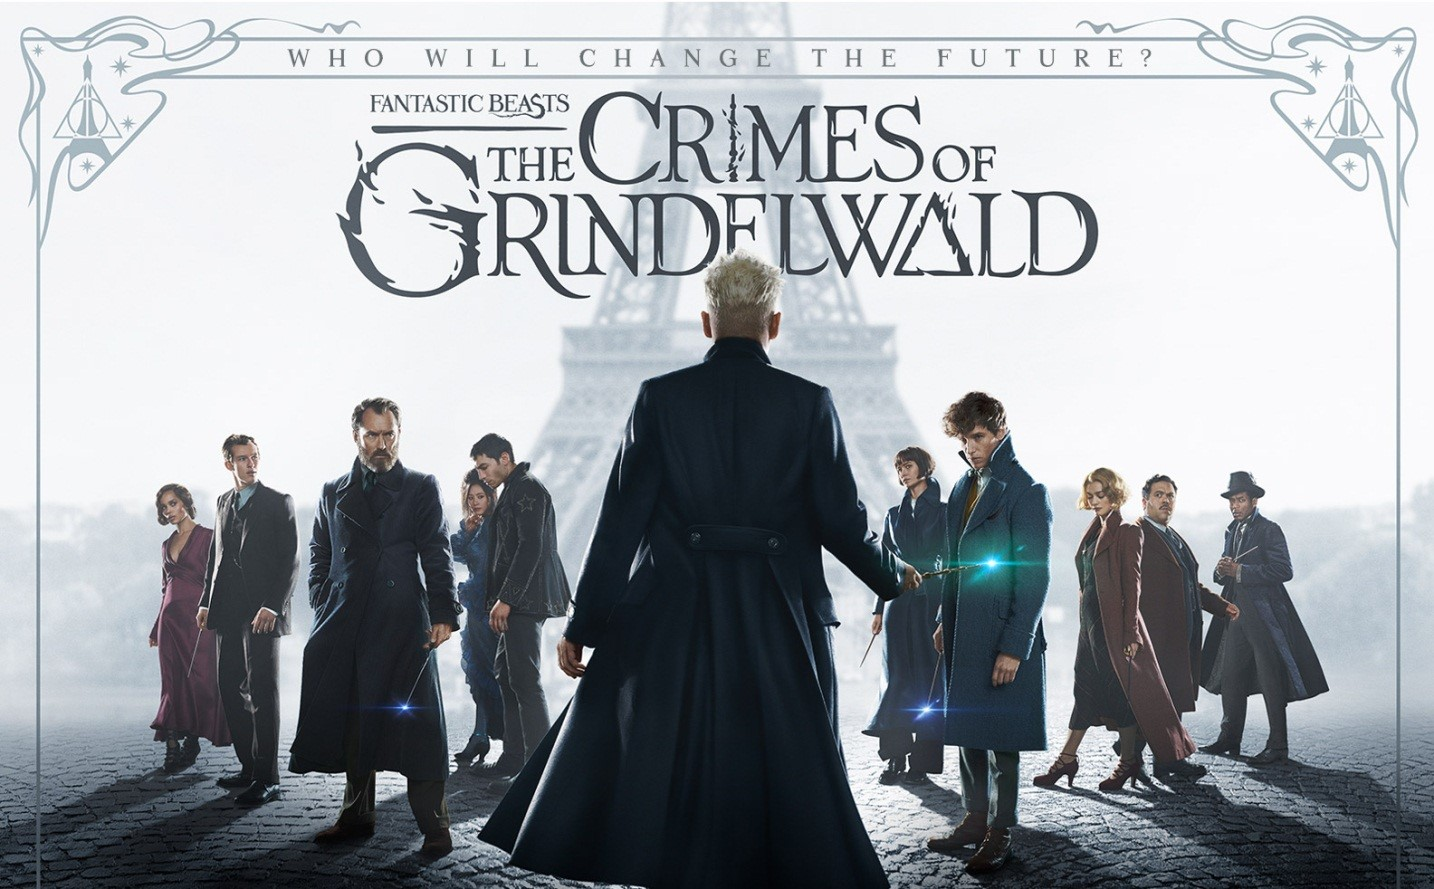 Poster phim Fantastic Beasts: The Crimes of Grindelwald